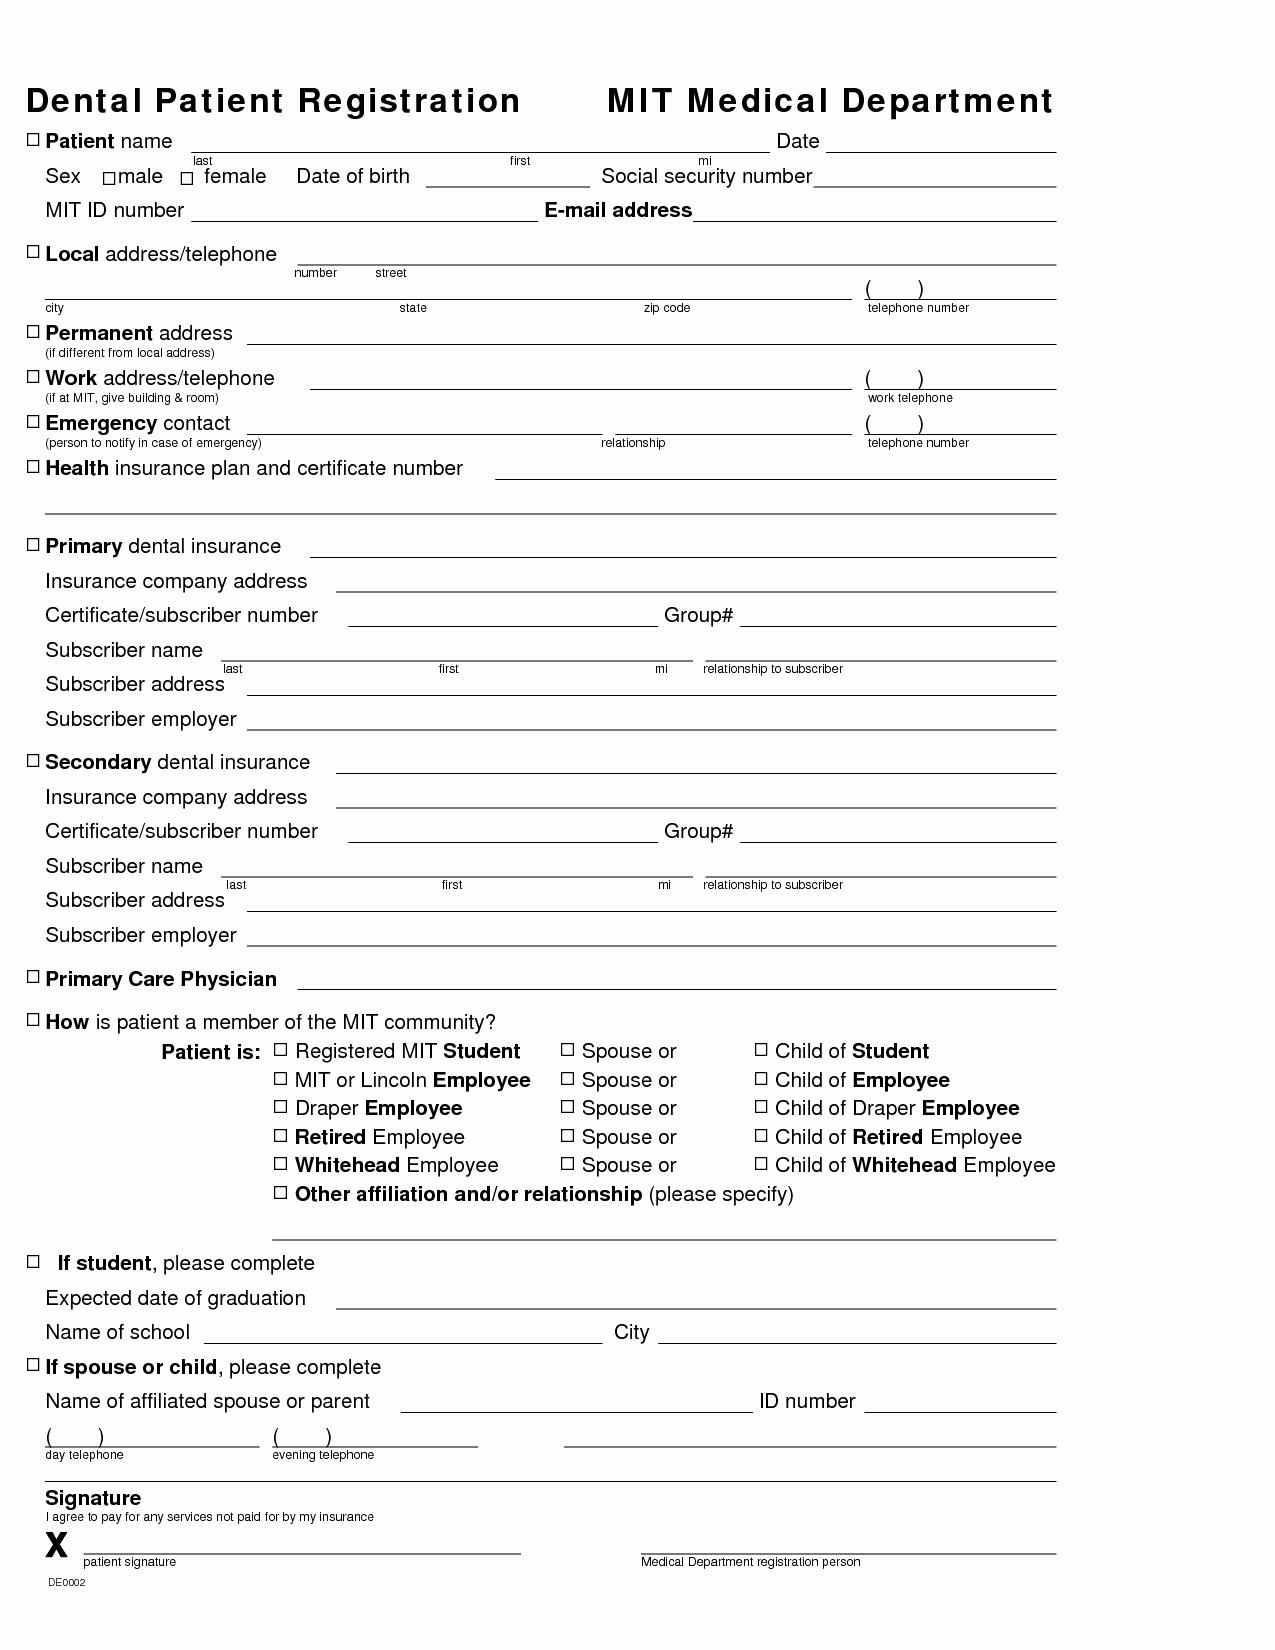 Dental Medical Questionnaire Template